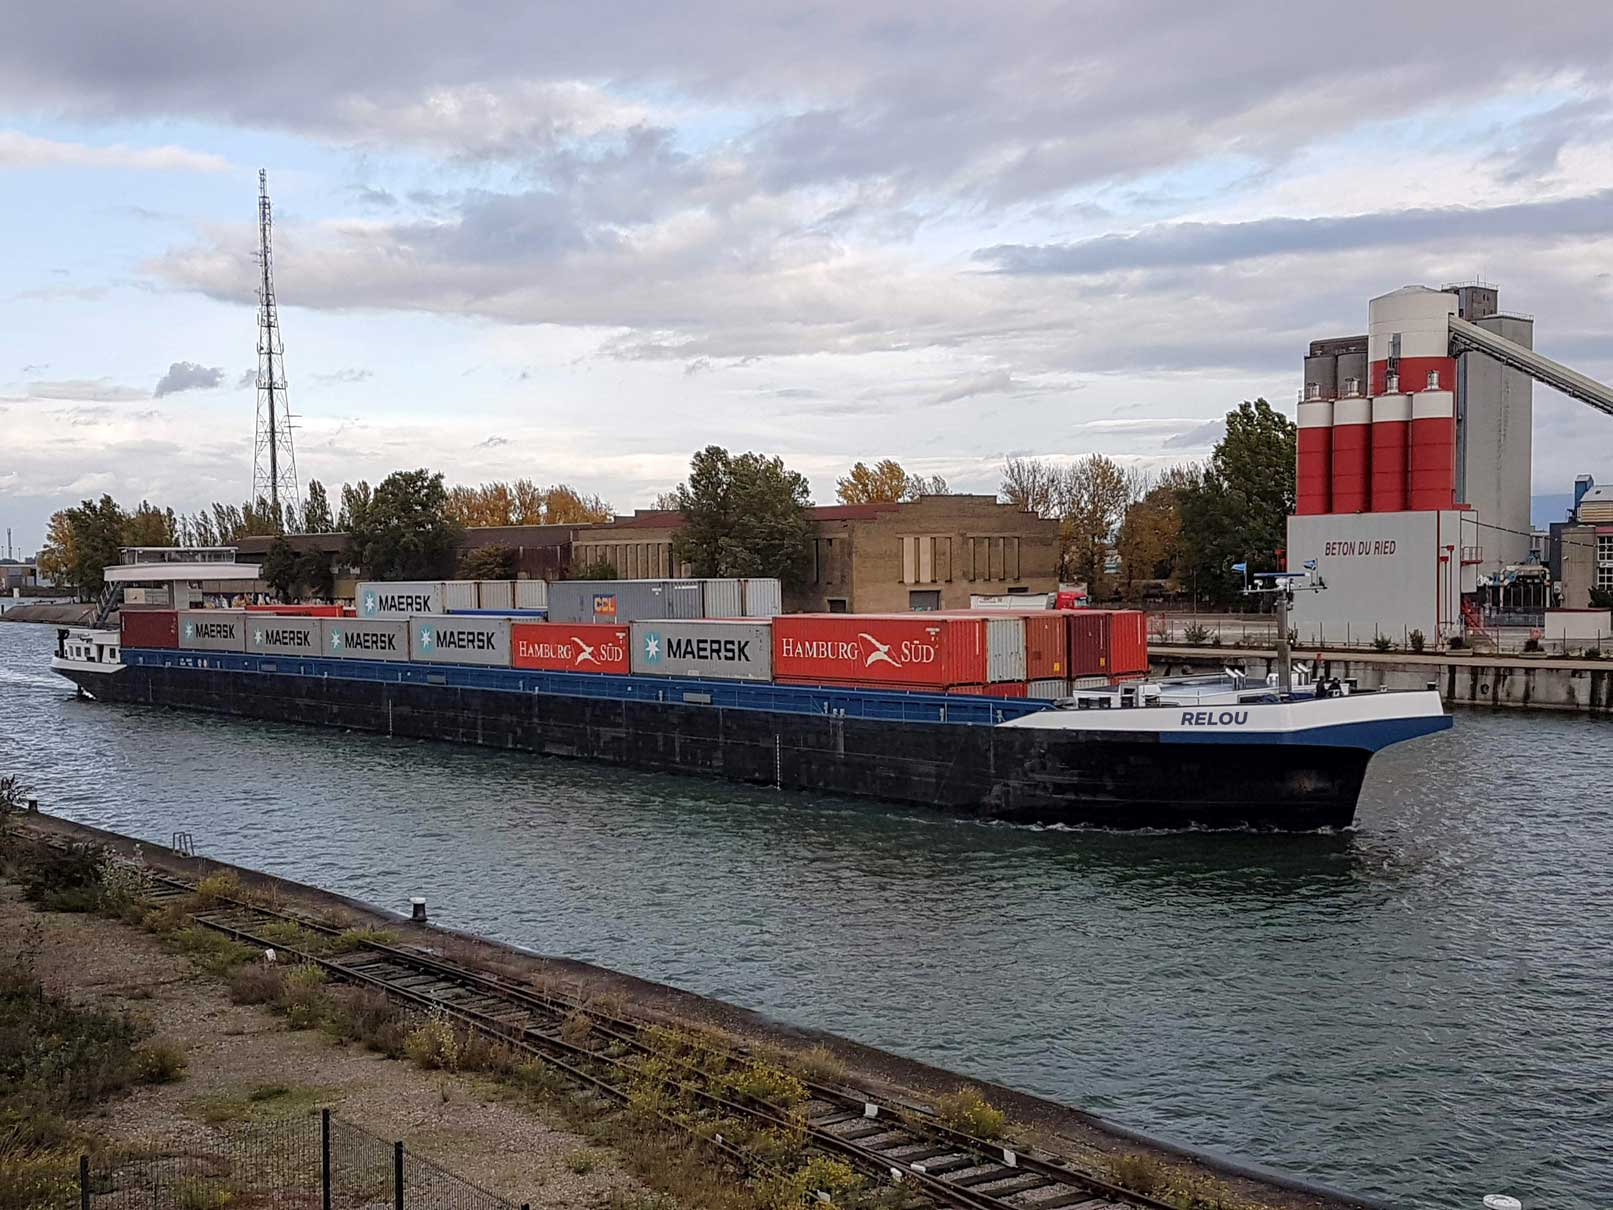 MMR barge ship passing by through the water, filled with containers